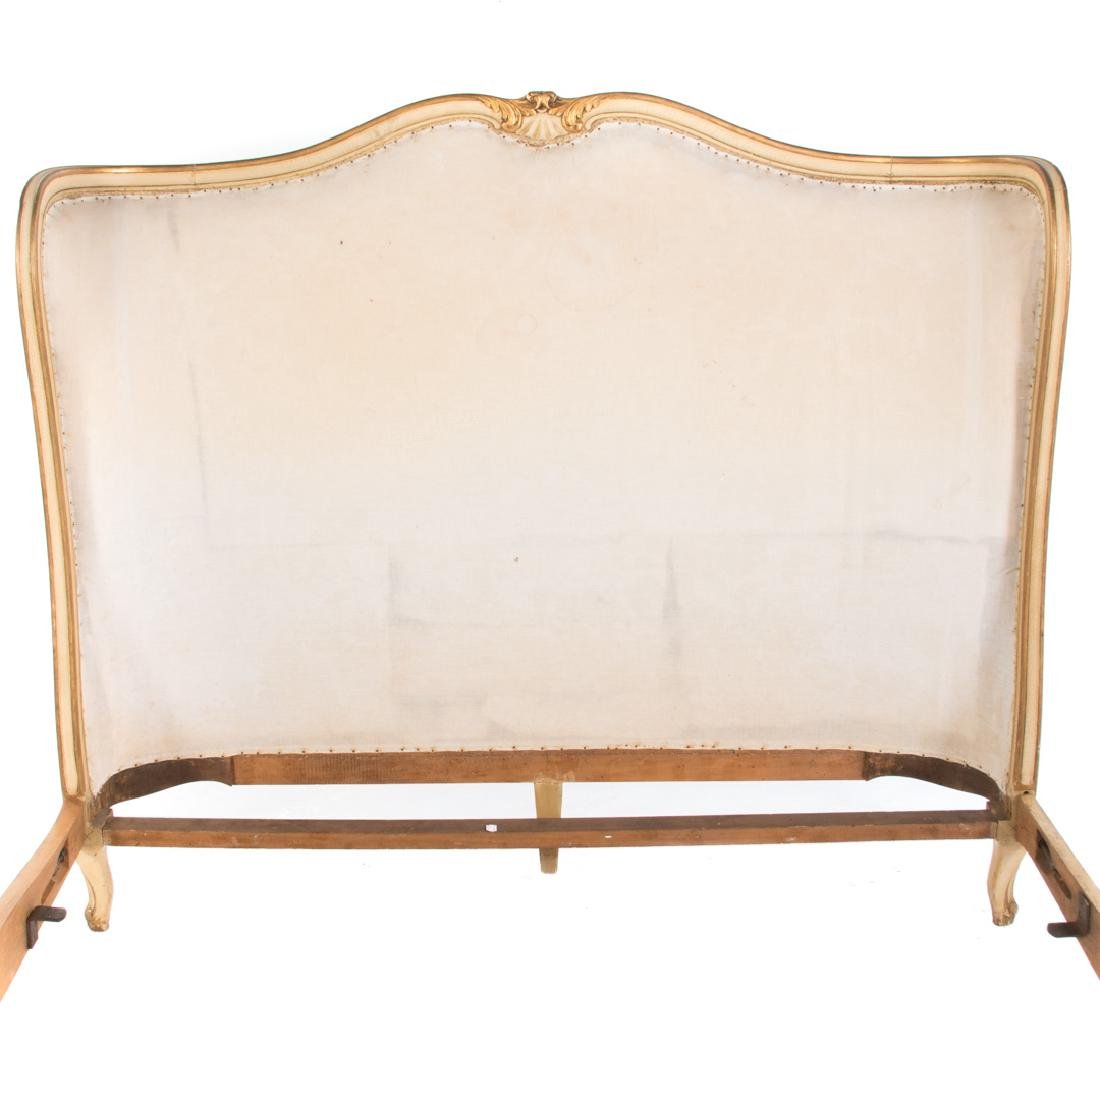 Louis XV style painted & parcel gilt bedstead - 2